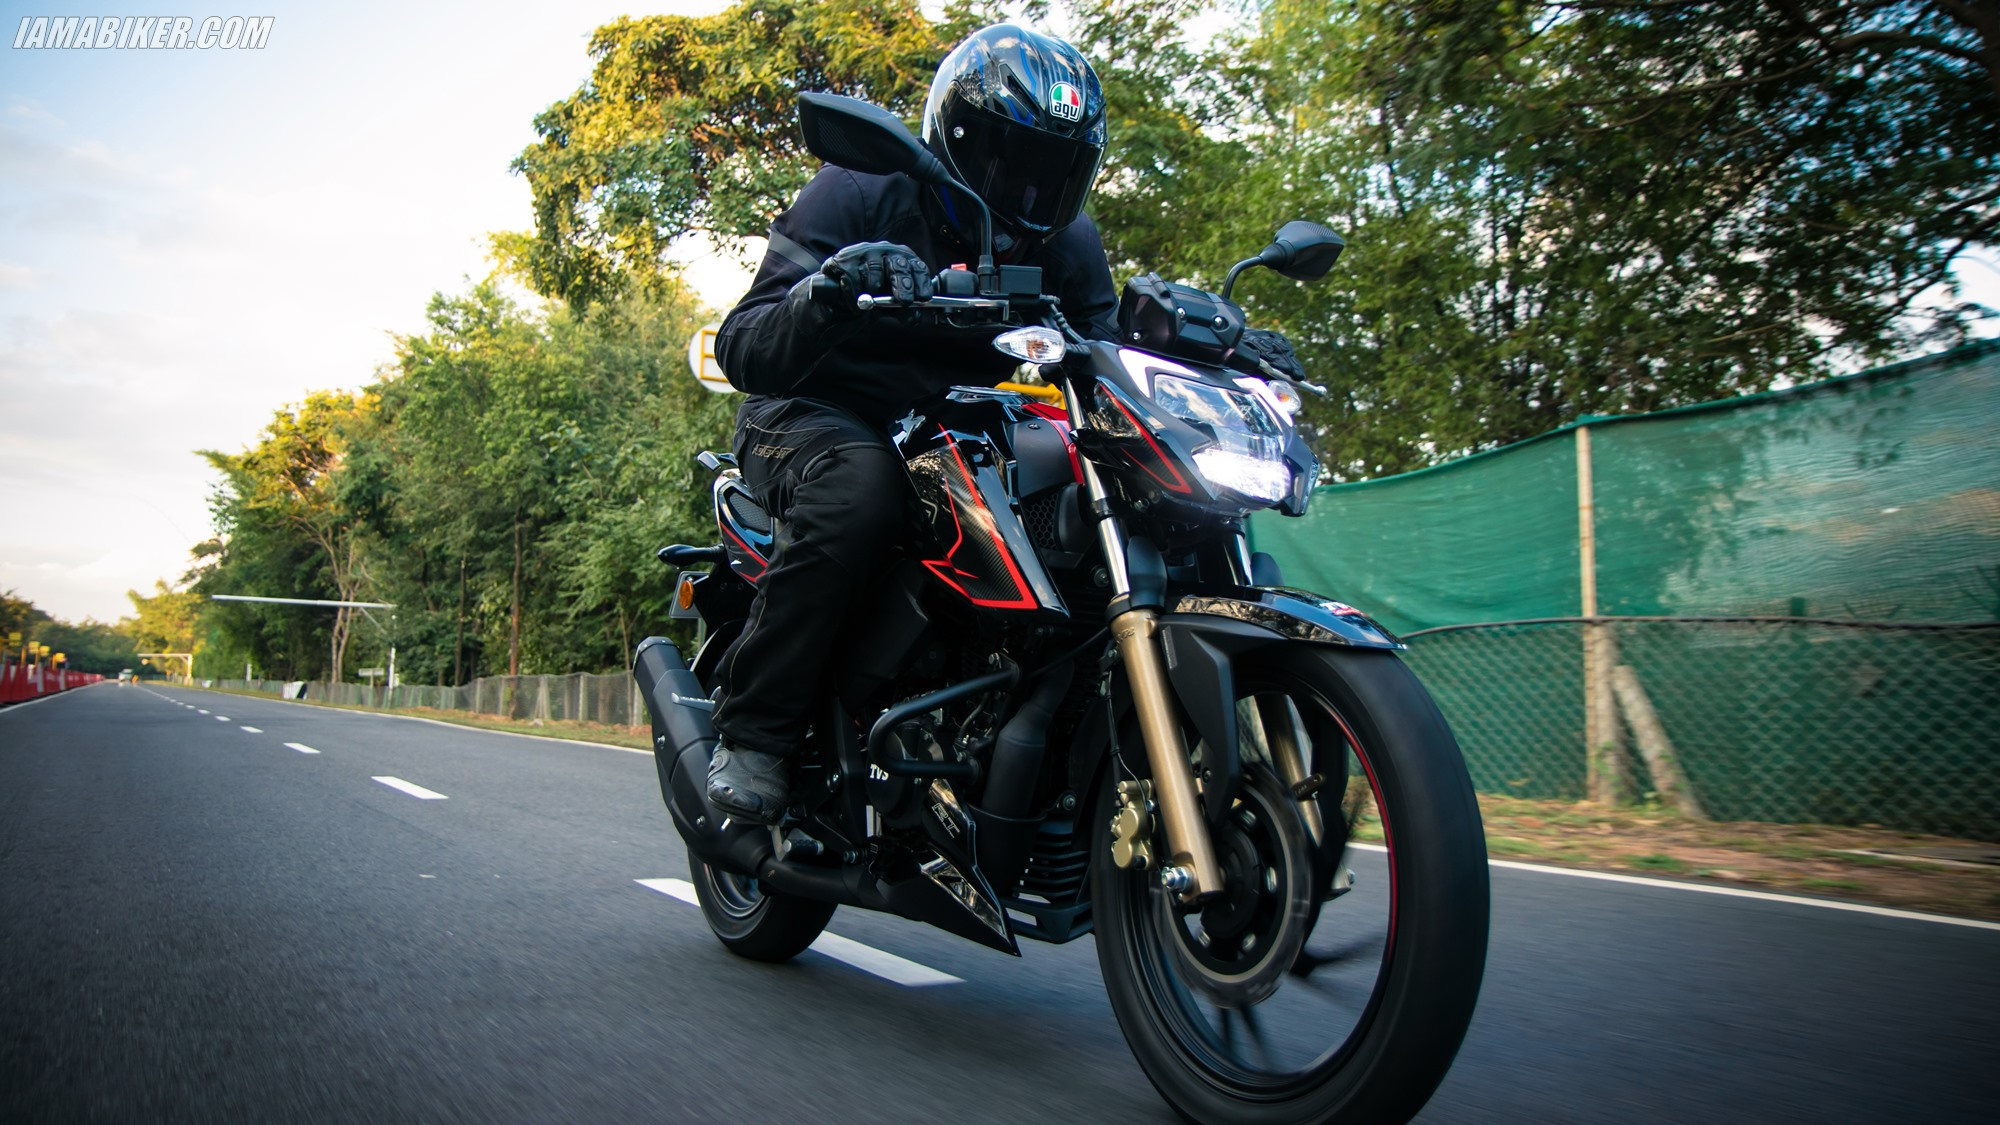 2020 TVS Apache RTR 200 4V BS6 review